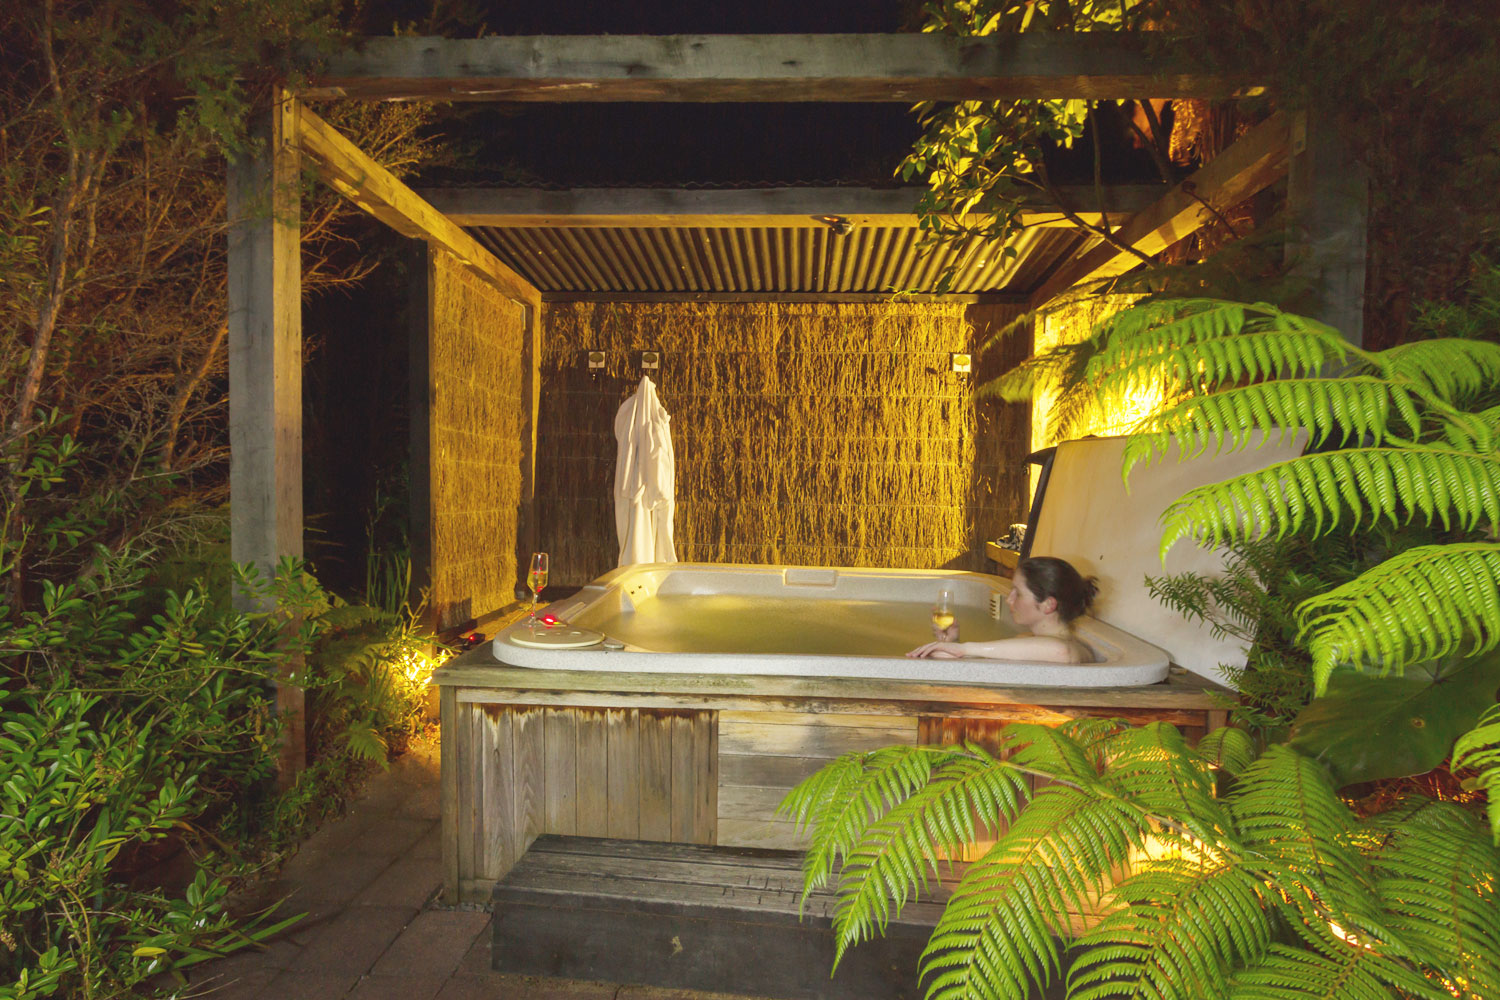 Enjoy a glas of champagne in the rainforest at our night sky spa pool at the Wairua Lodge